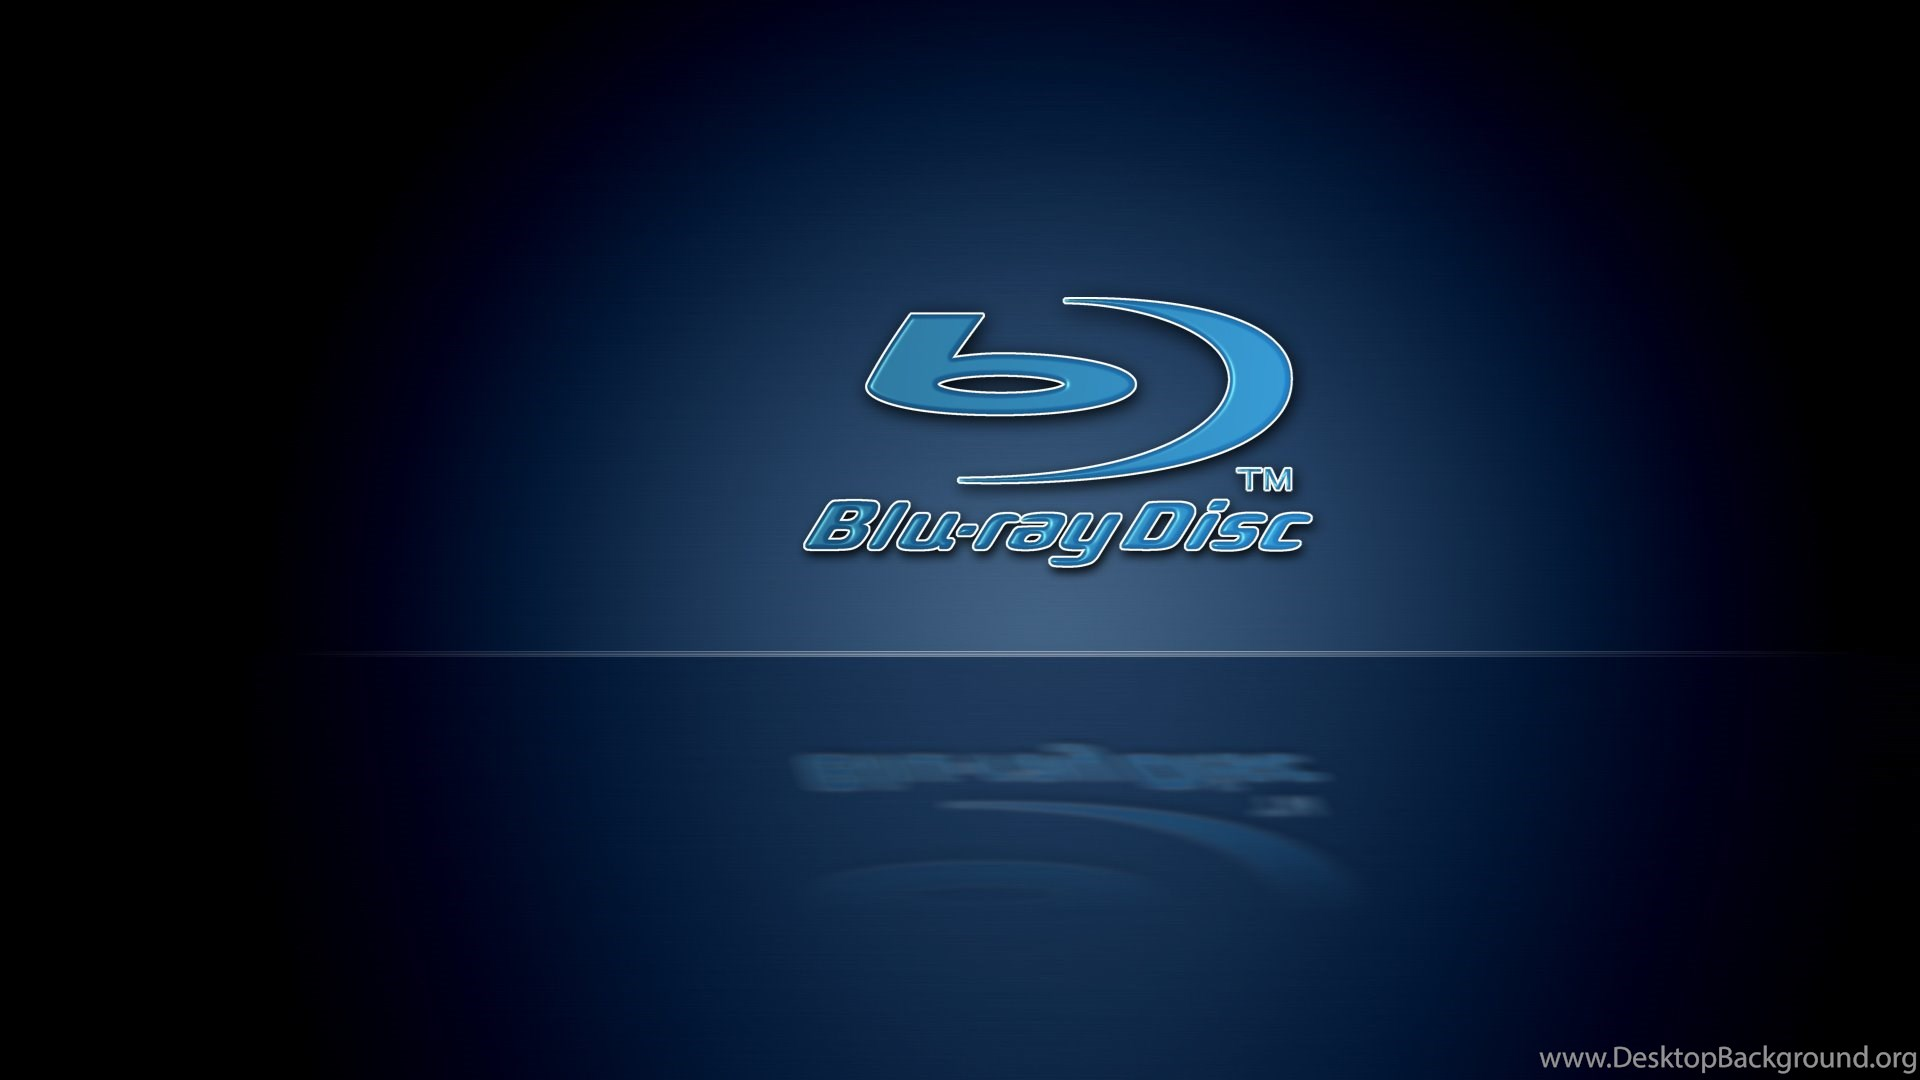 Blu Ray High Resolution 1920x1080 Hd Wallpapers And Free Stock